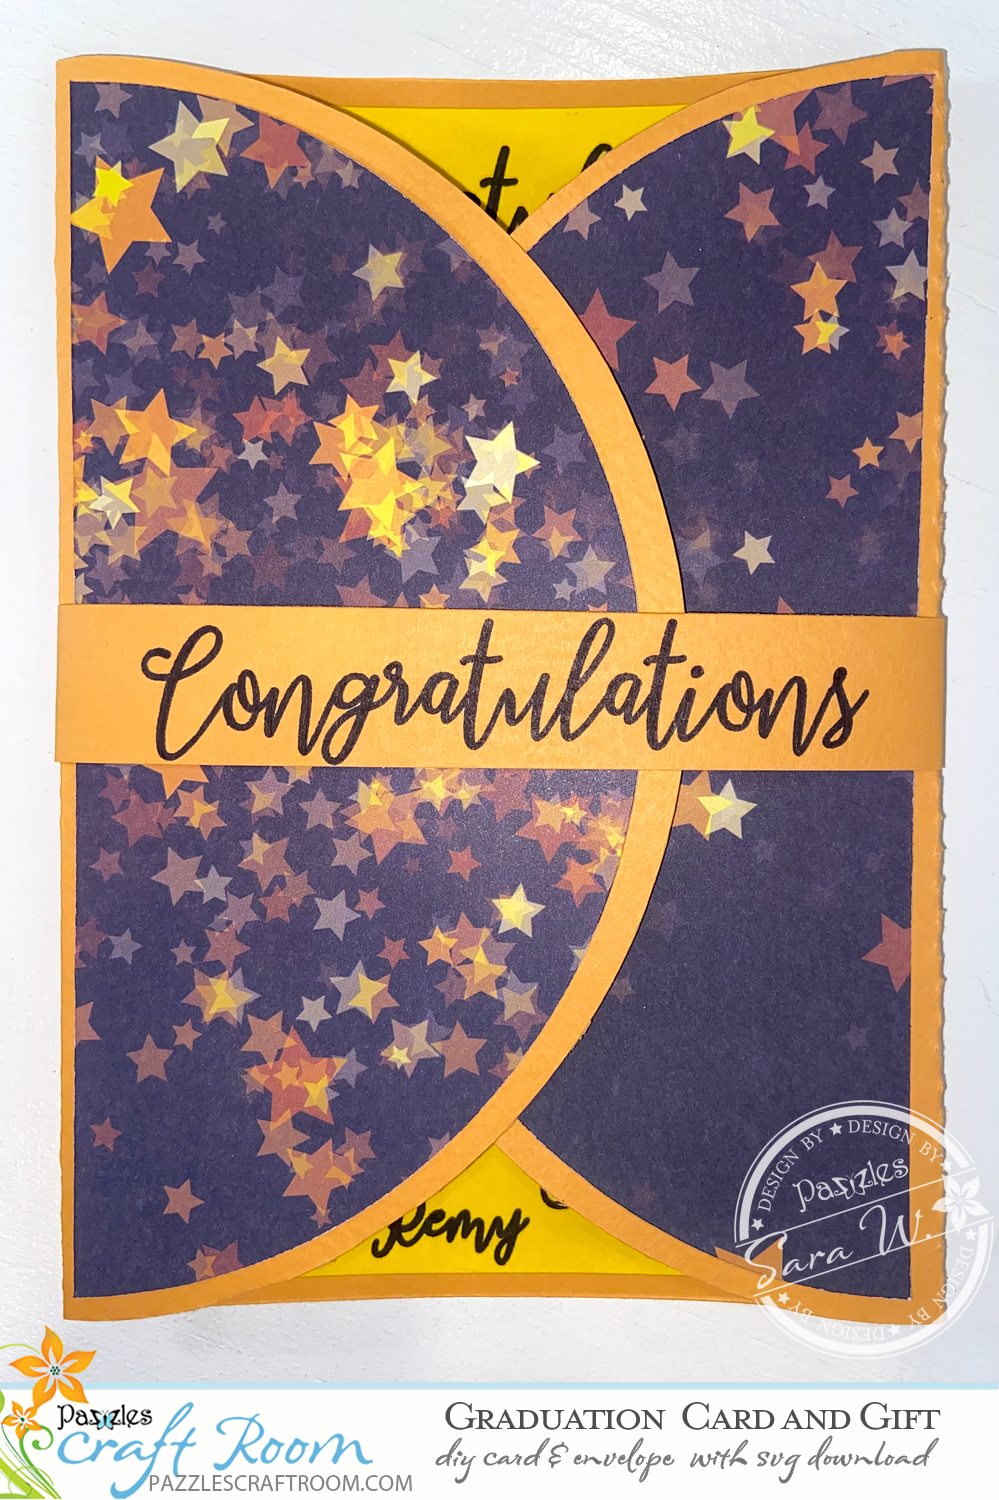 Pazzles DIY Graduation Card and Gift with instant SVG download. Instant SVG download compatible with all major electronic cutters including Pazzles Inspiration, Cricut, and Silhouette Cameo. Design by Sara Weber.